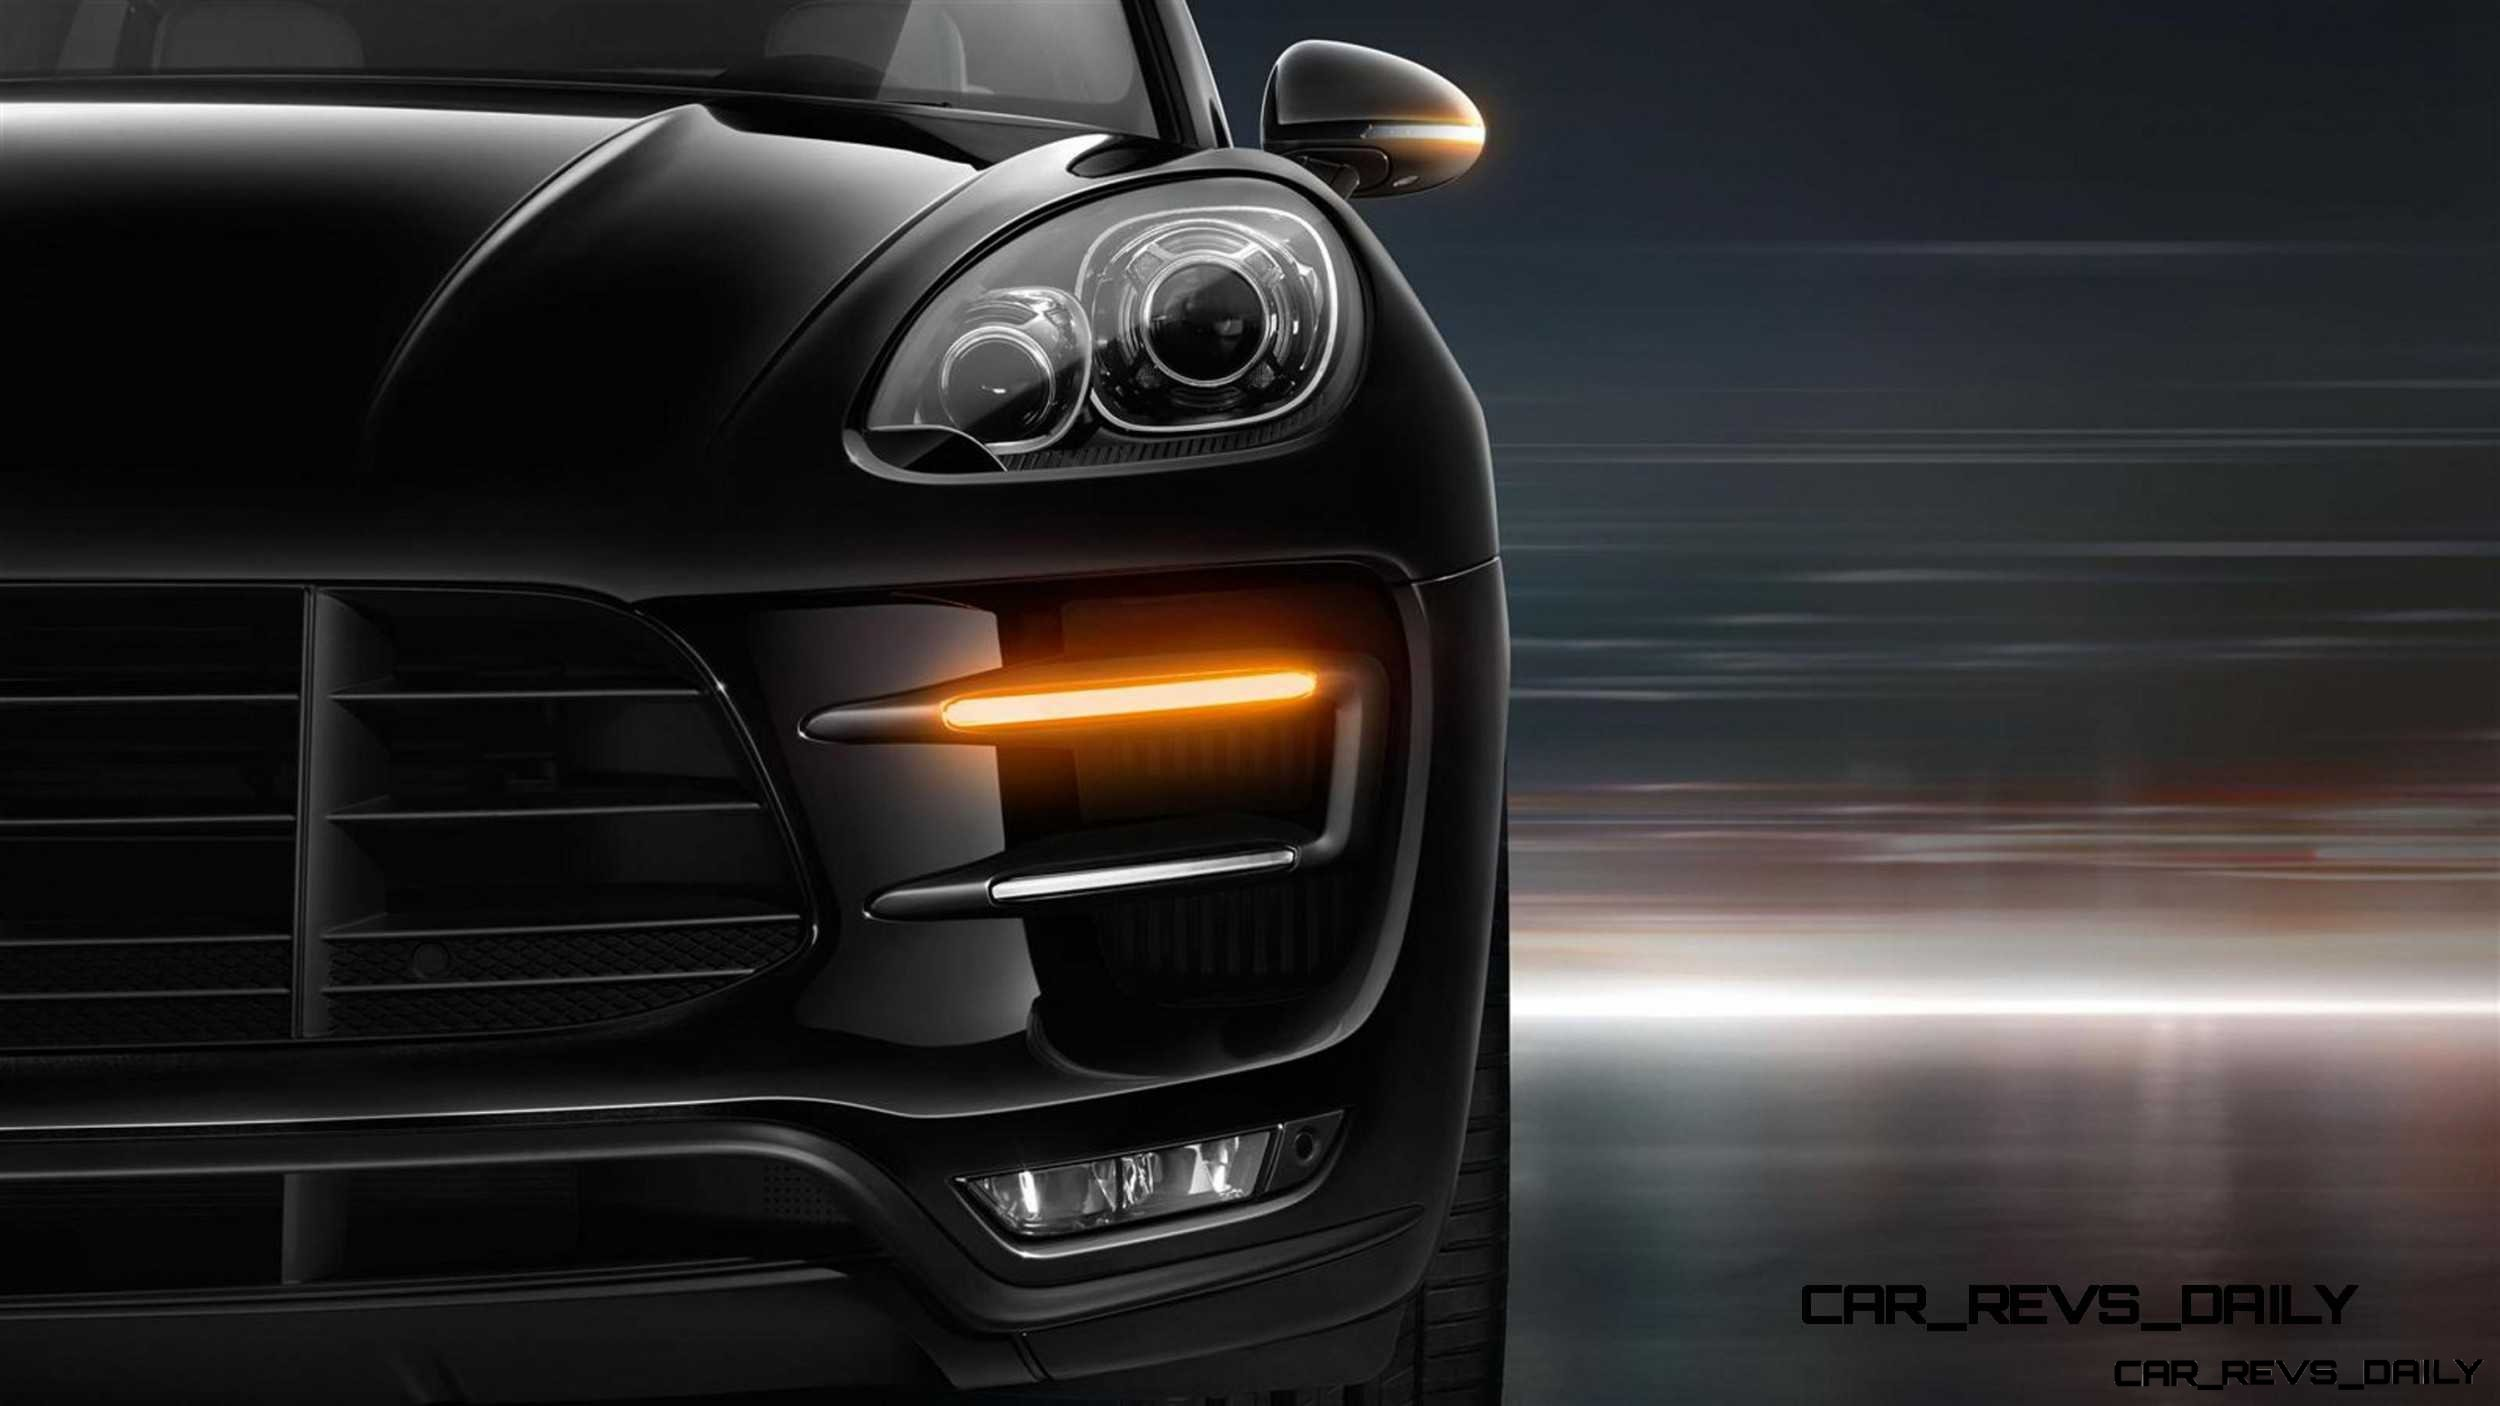 2015 Porsche Macan - Latest Images - CarRevsDaily.com 12